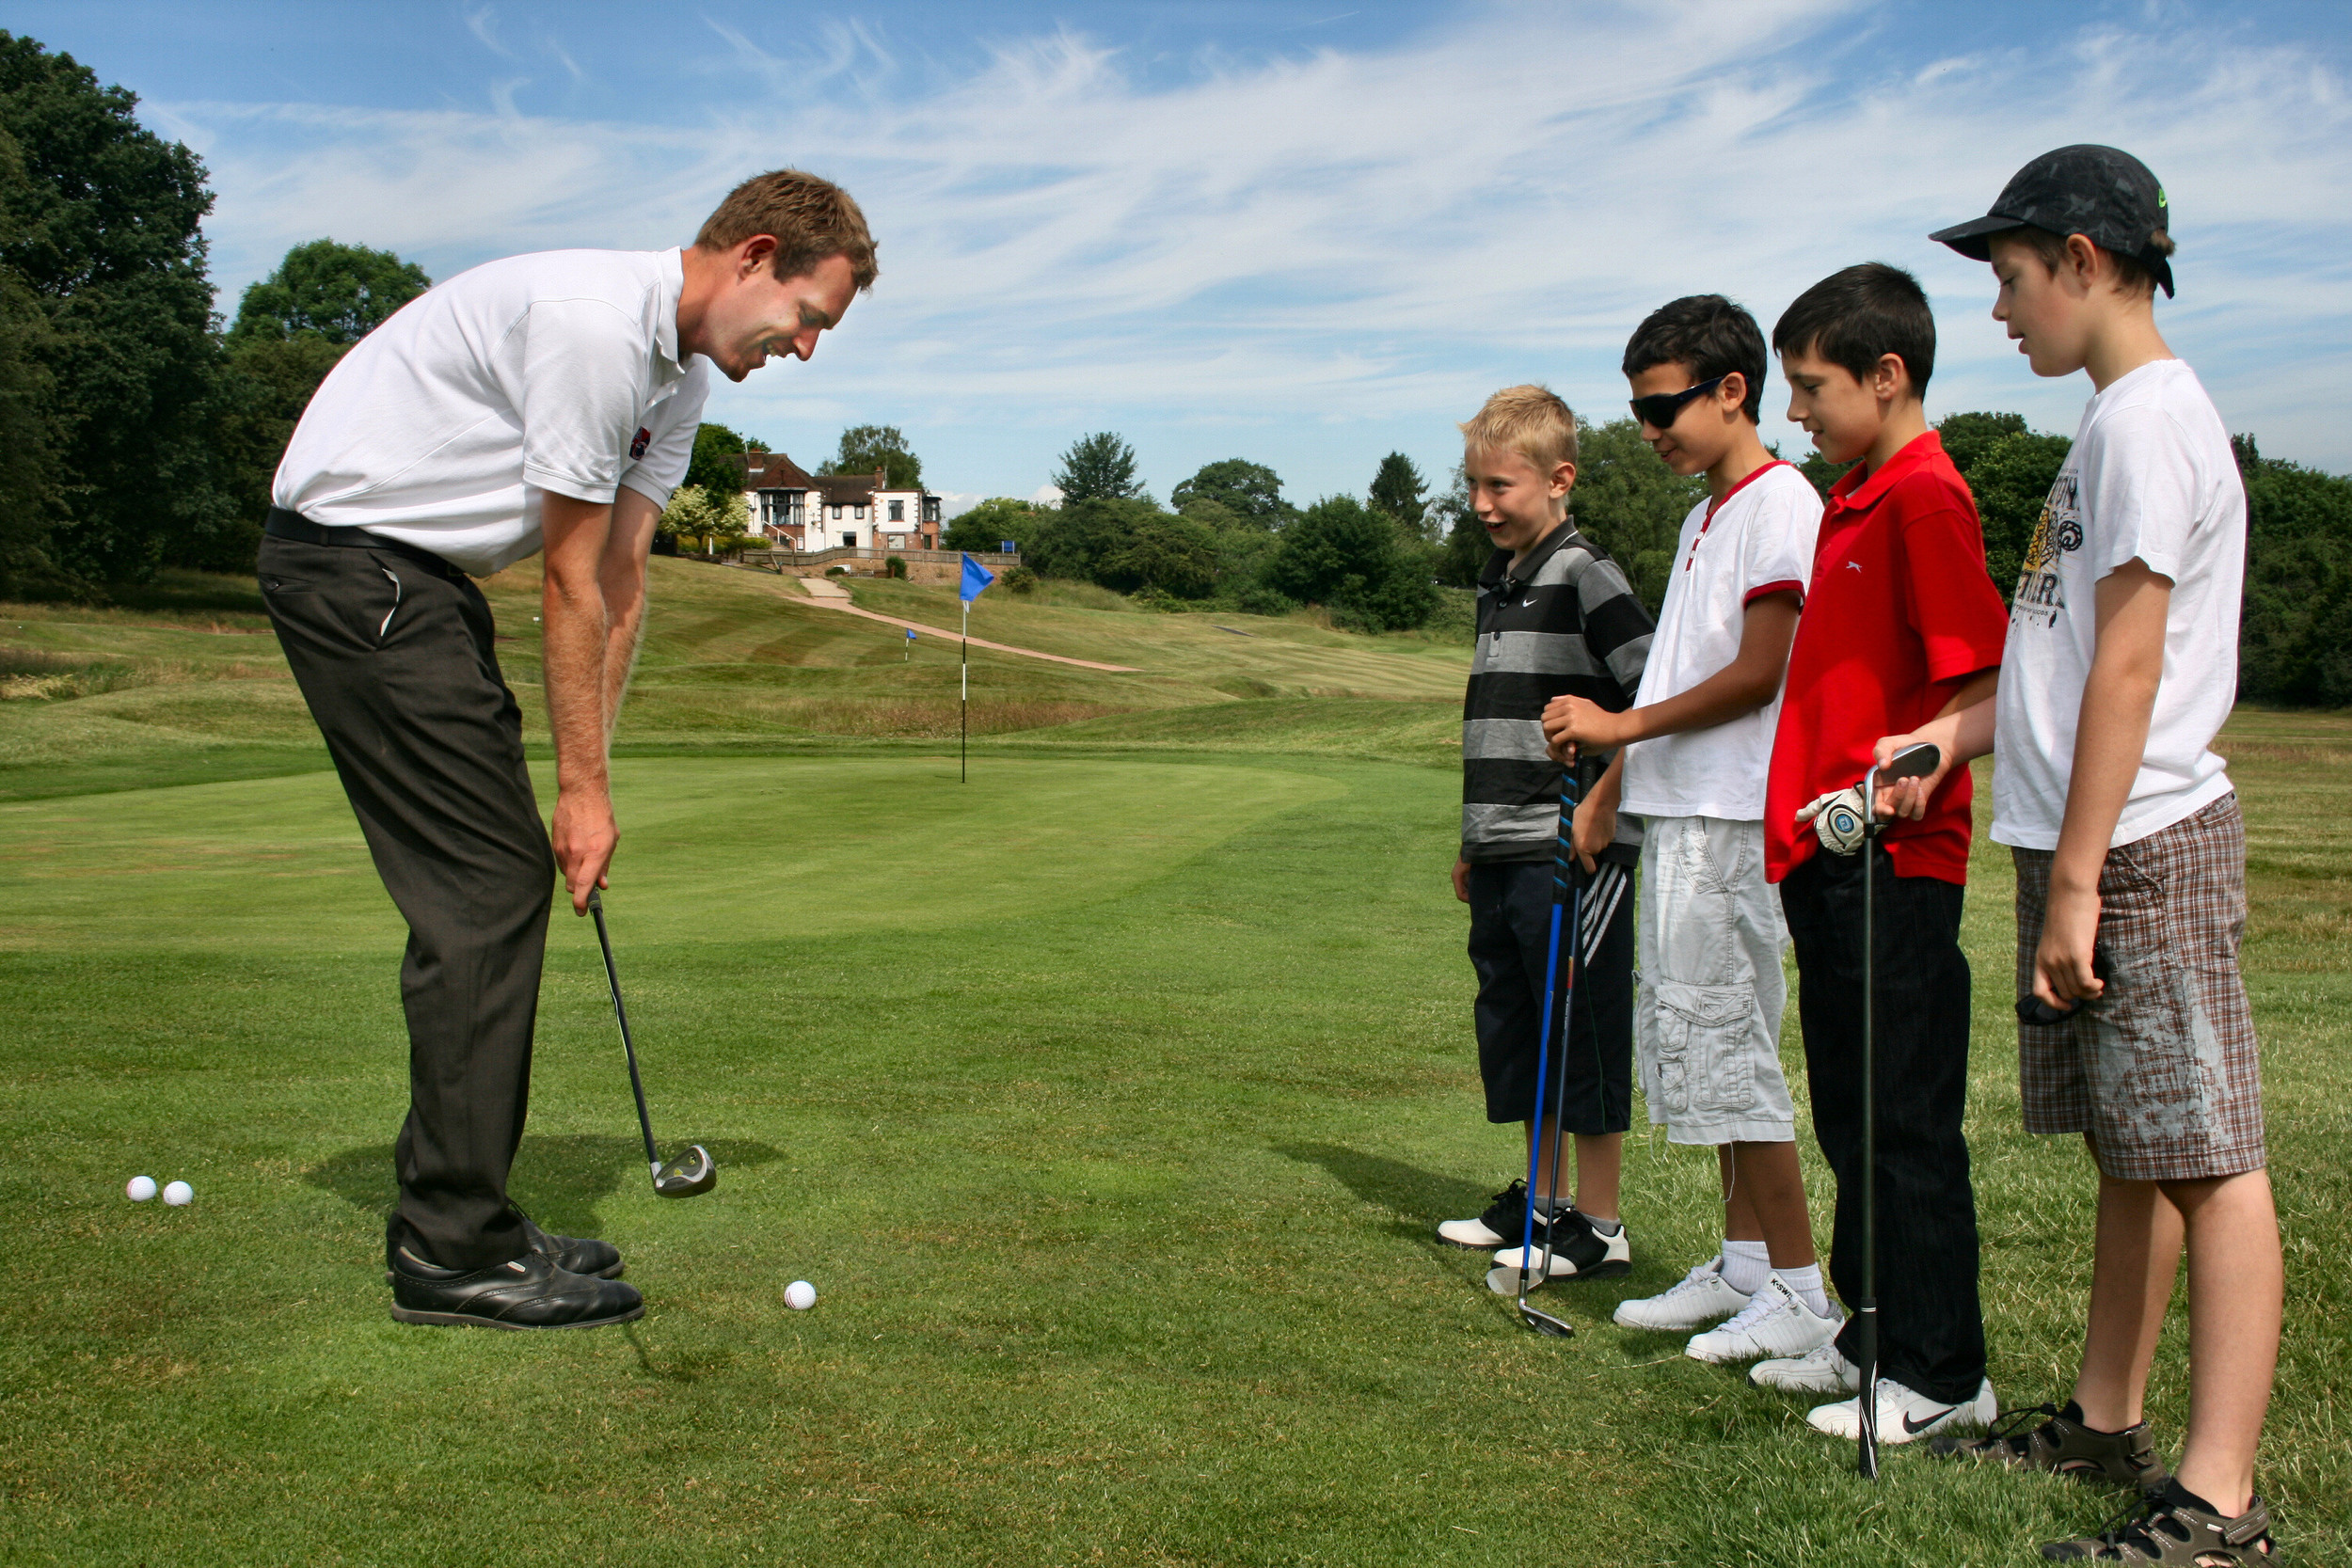 addington-court-golfmark-accreditation-alexmacgregor-pga-professional-coaching-children.jpg